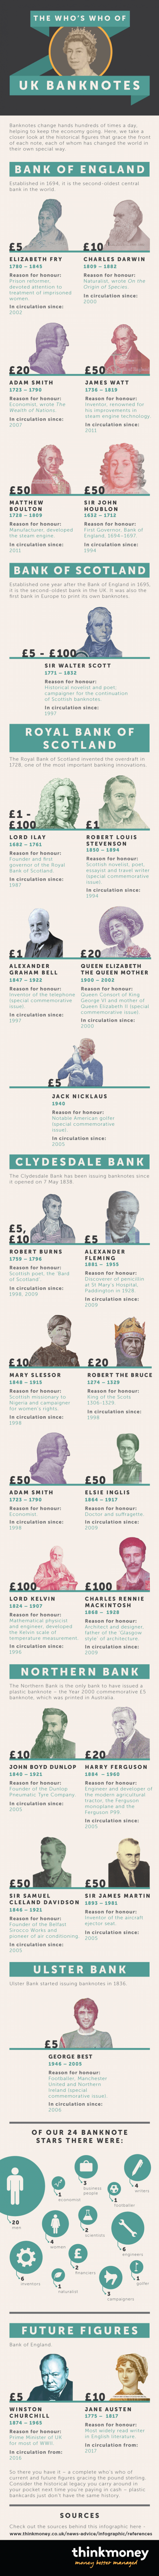 The Who�s Who of UK Banknotes